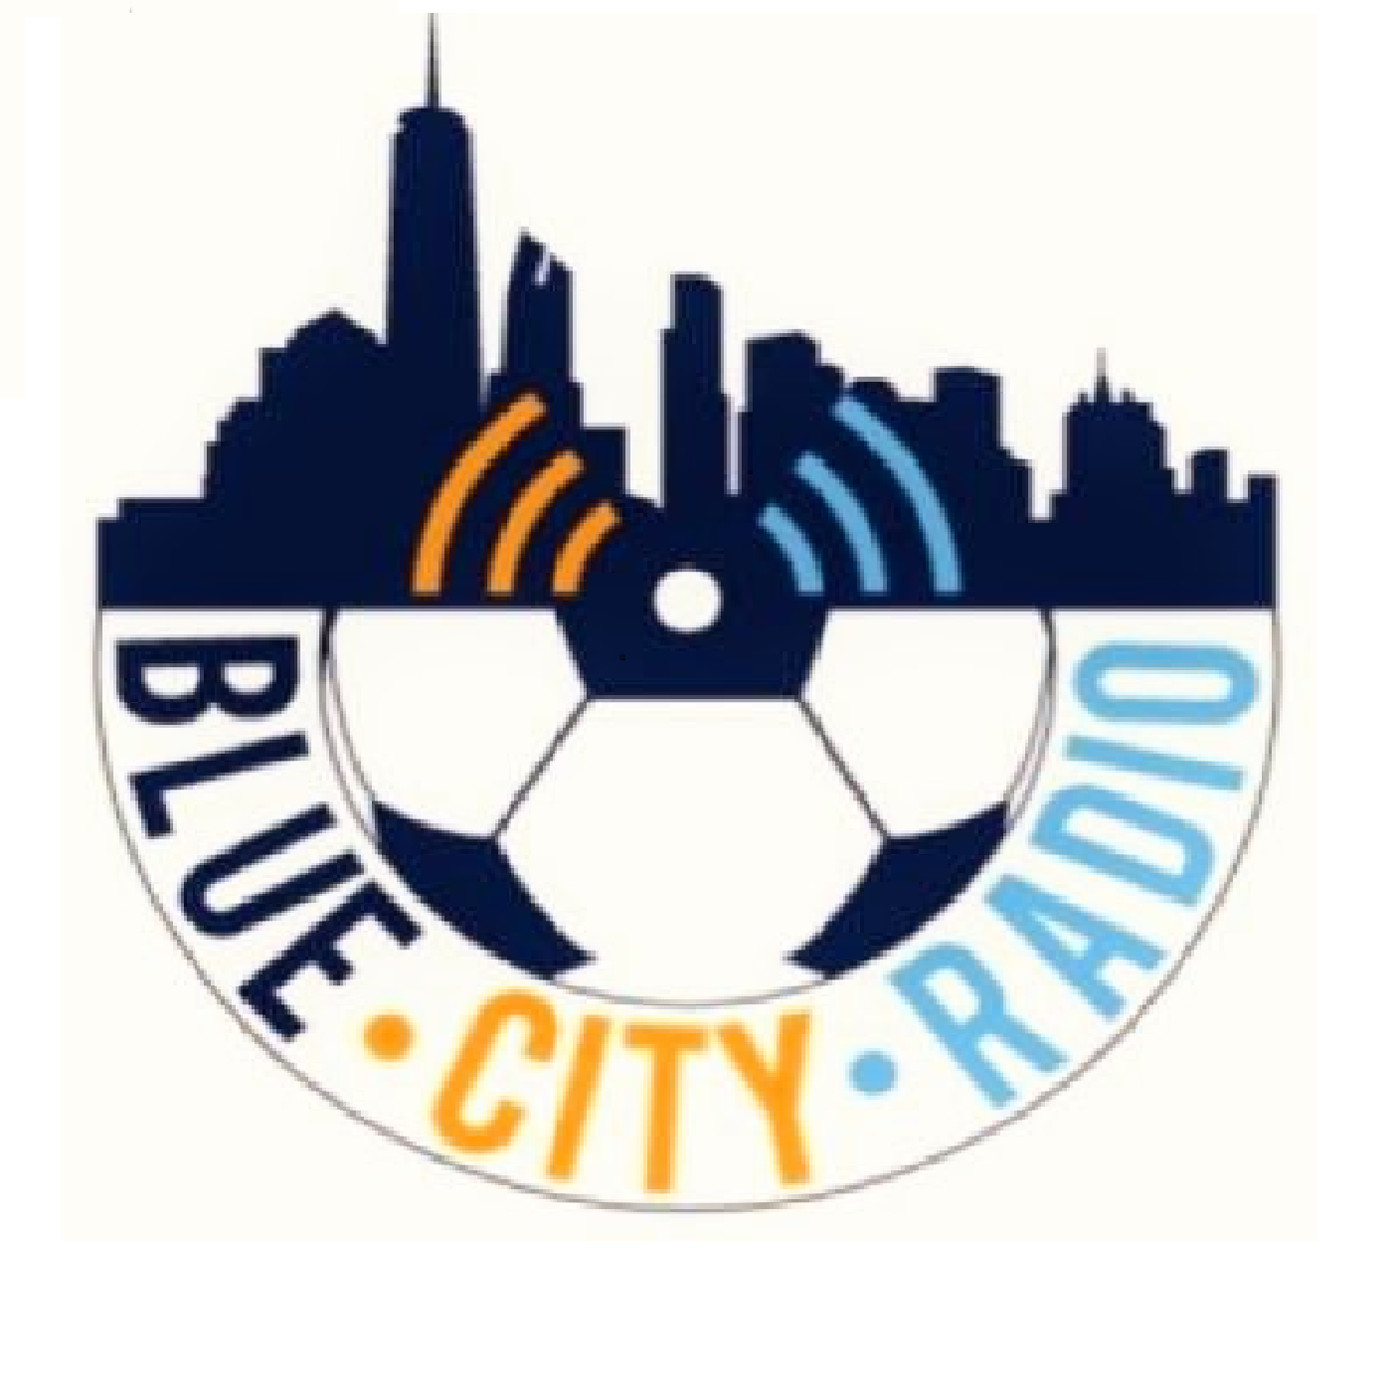 1 Out Of 6 / Ep 299 / Blue City Radio